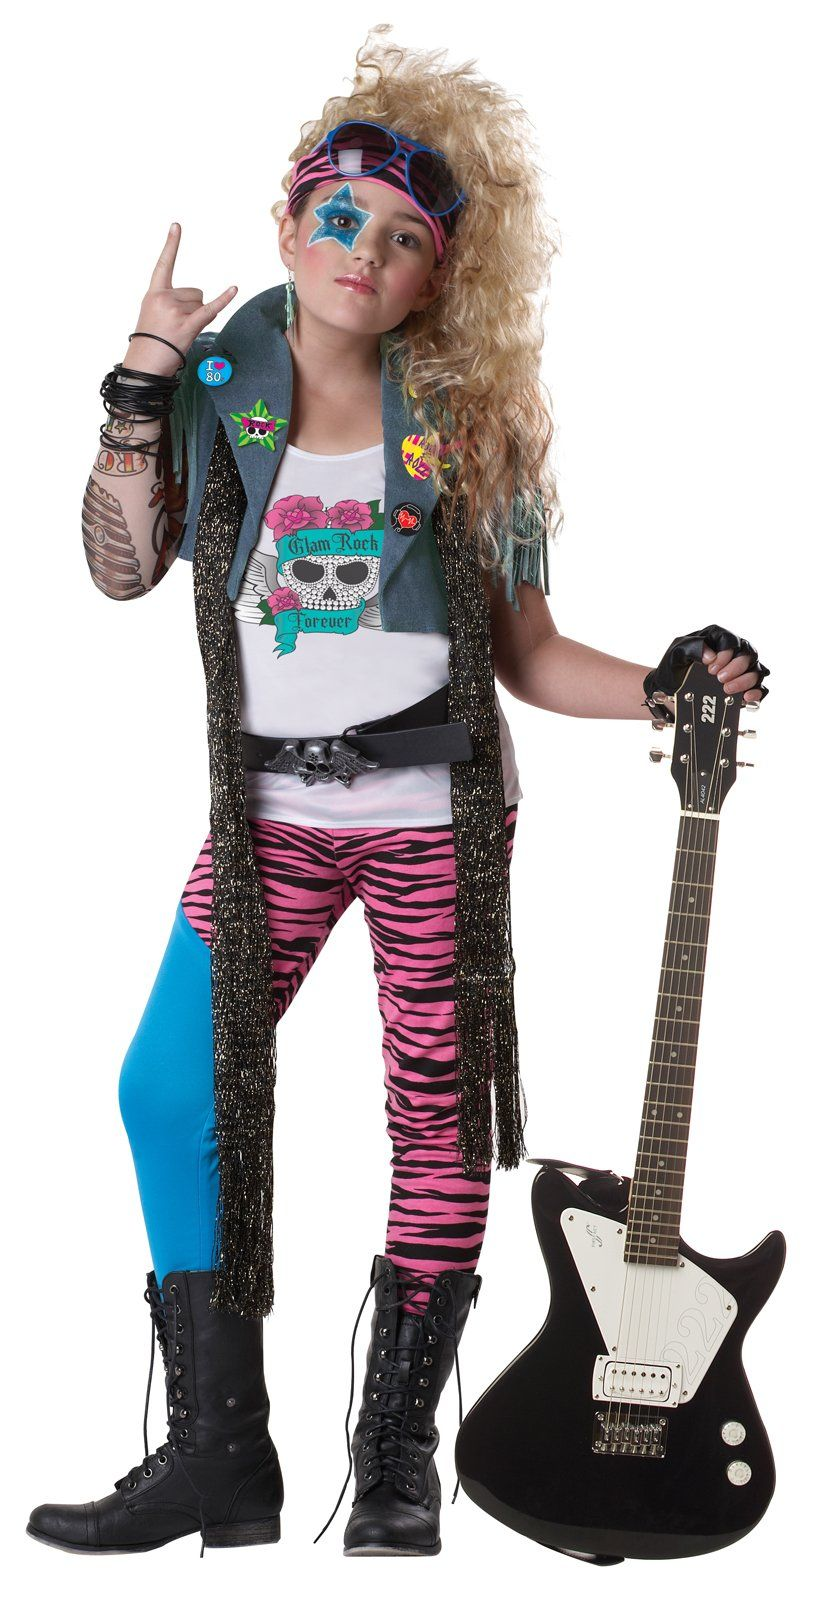 child 80s punk rock star costume for girls | hollowen | pinterest